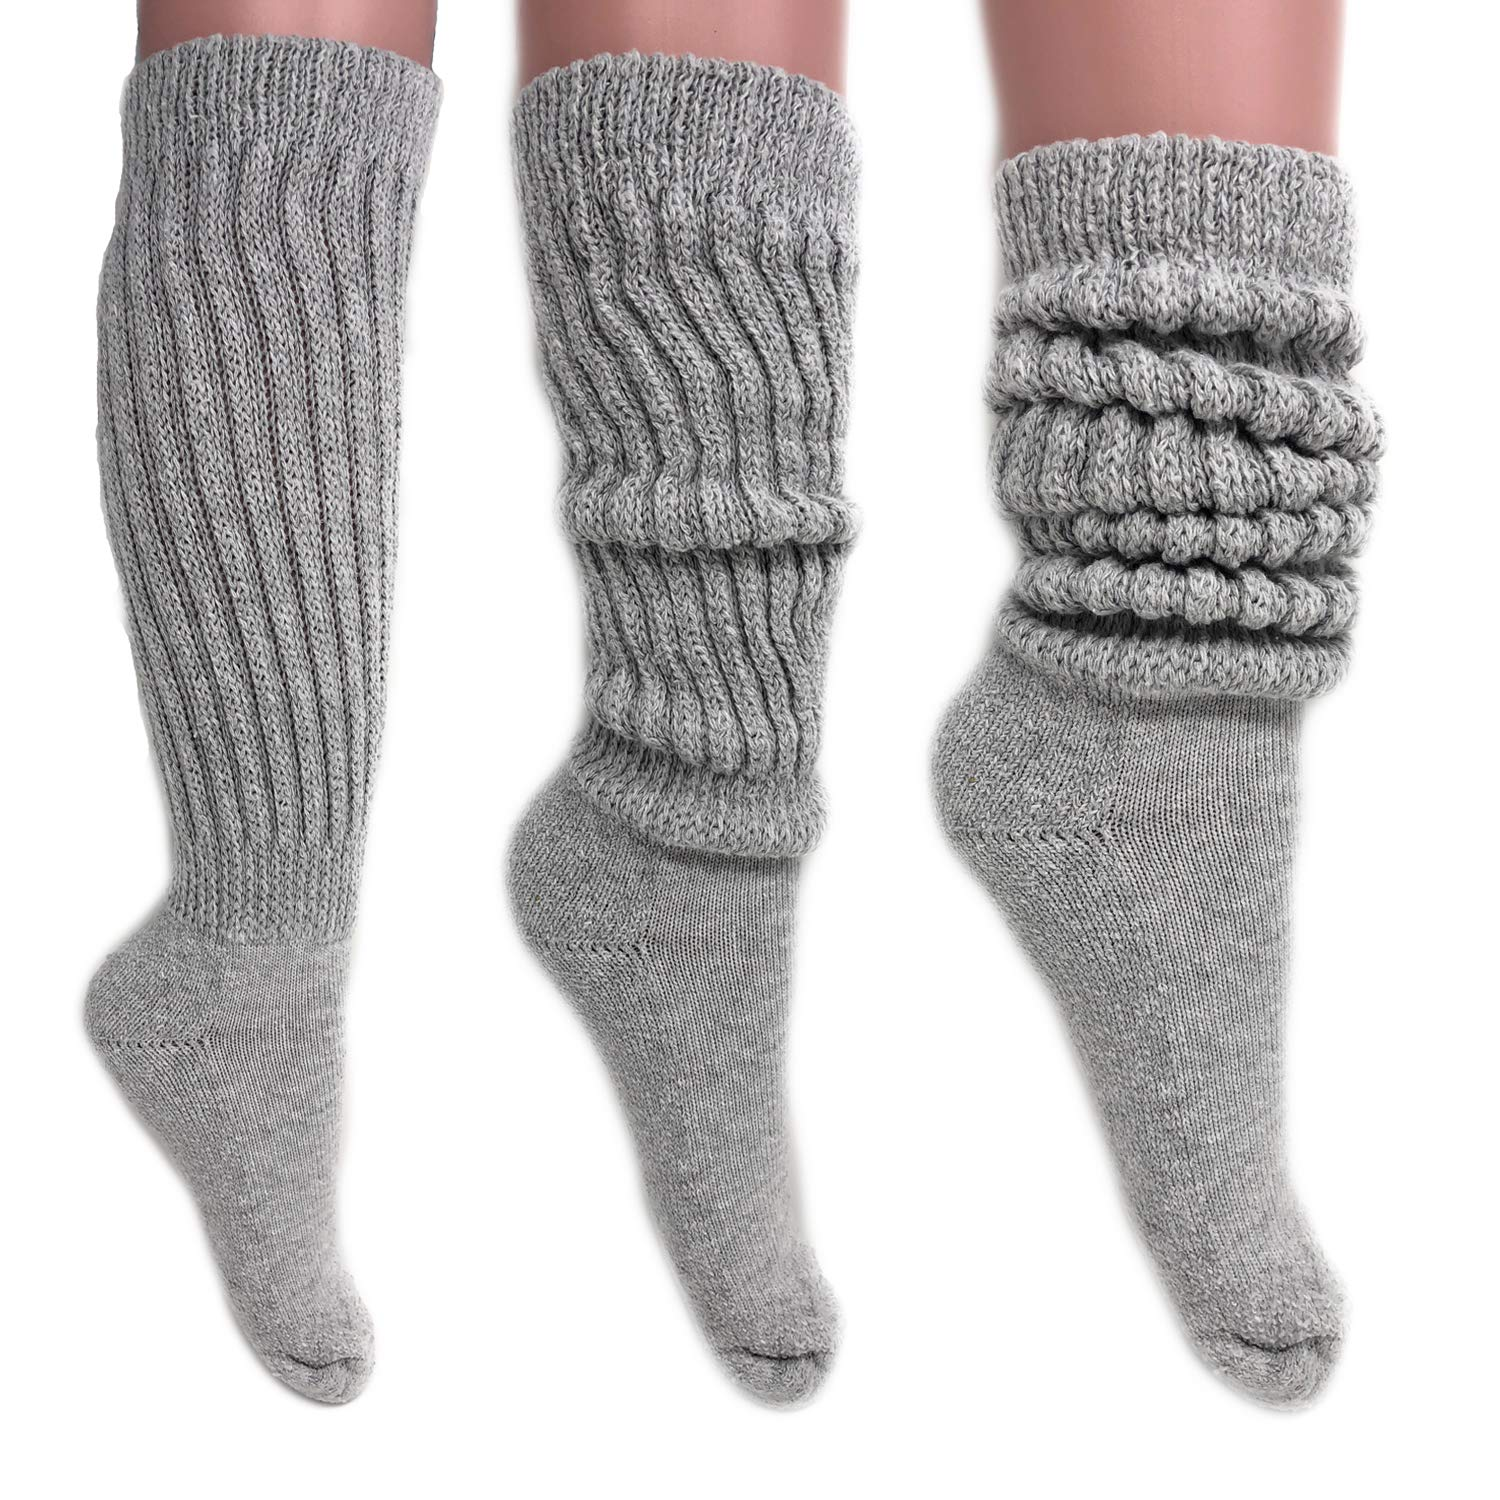 Women's Extra Long Heavy Slouch Cotton Socks Made in USA Size 9 to 11 (3 Pairs - Gray)